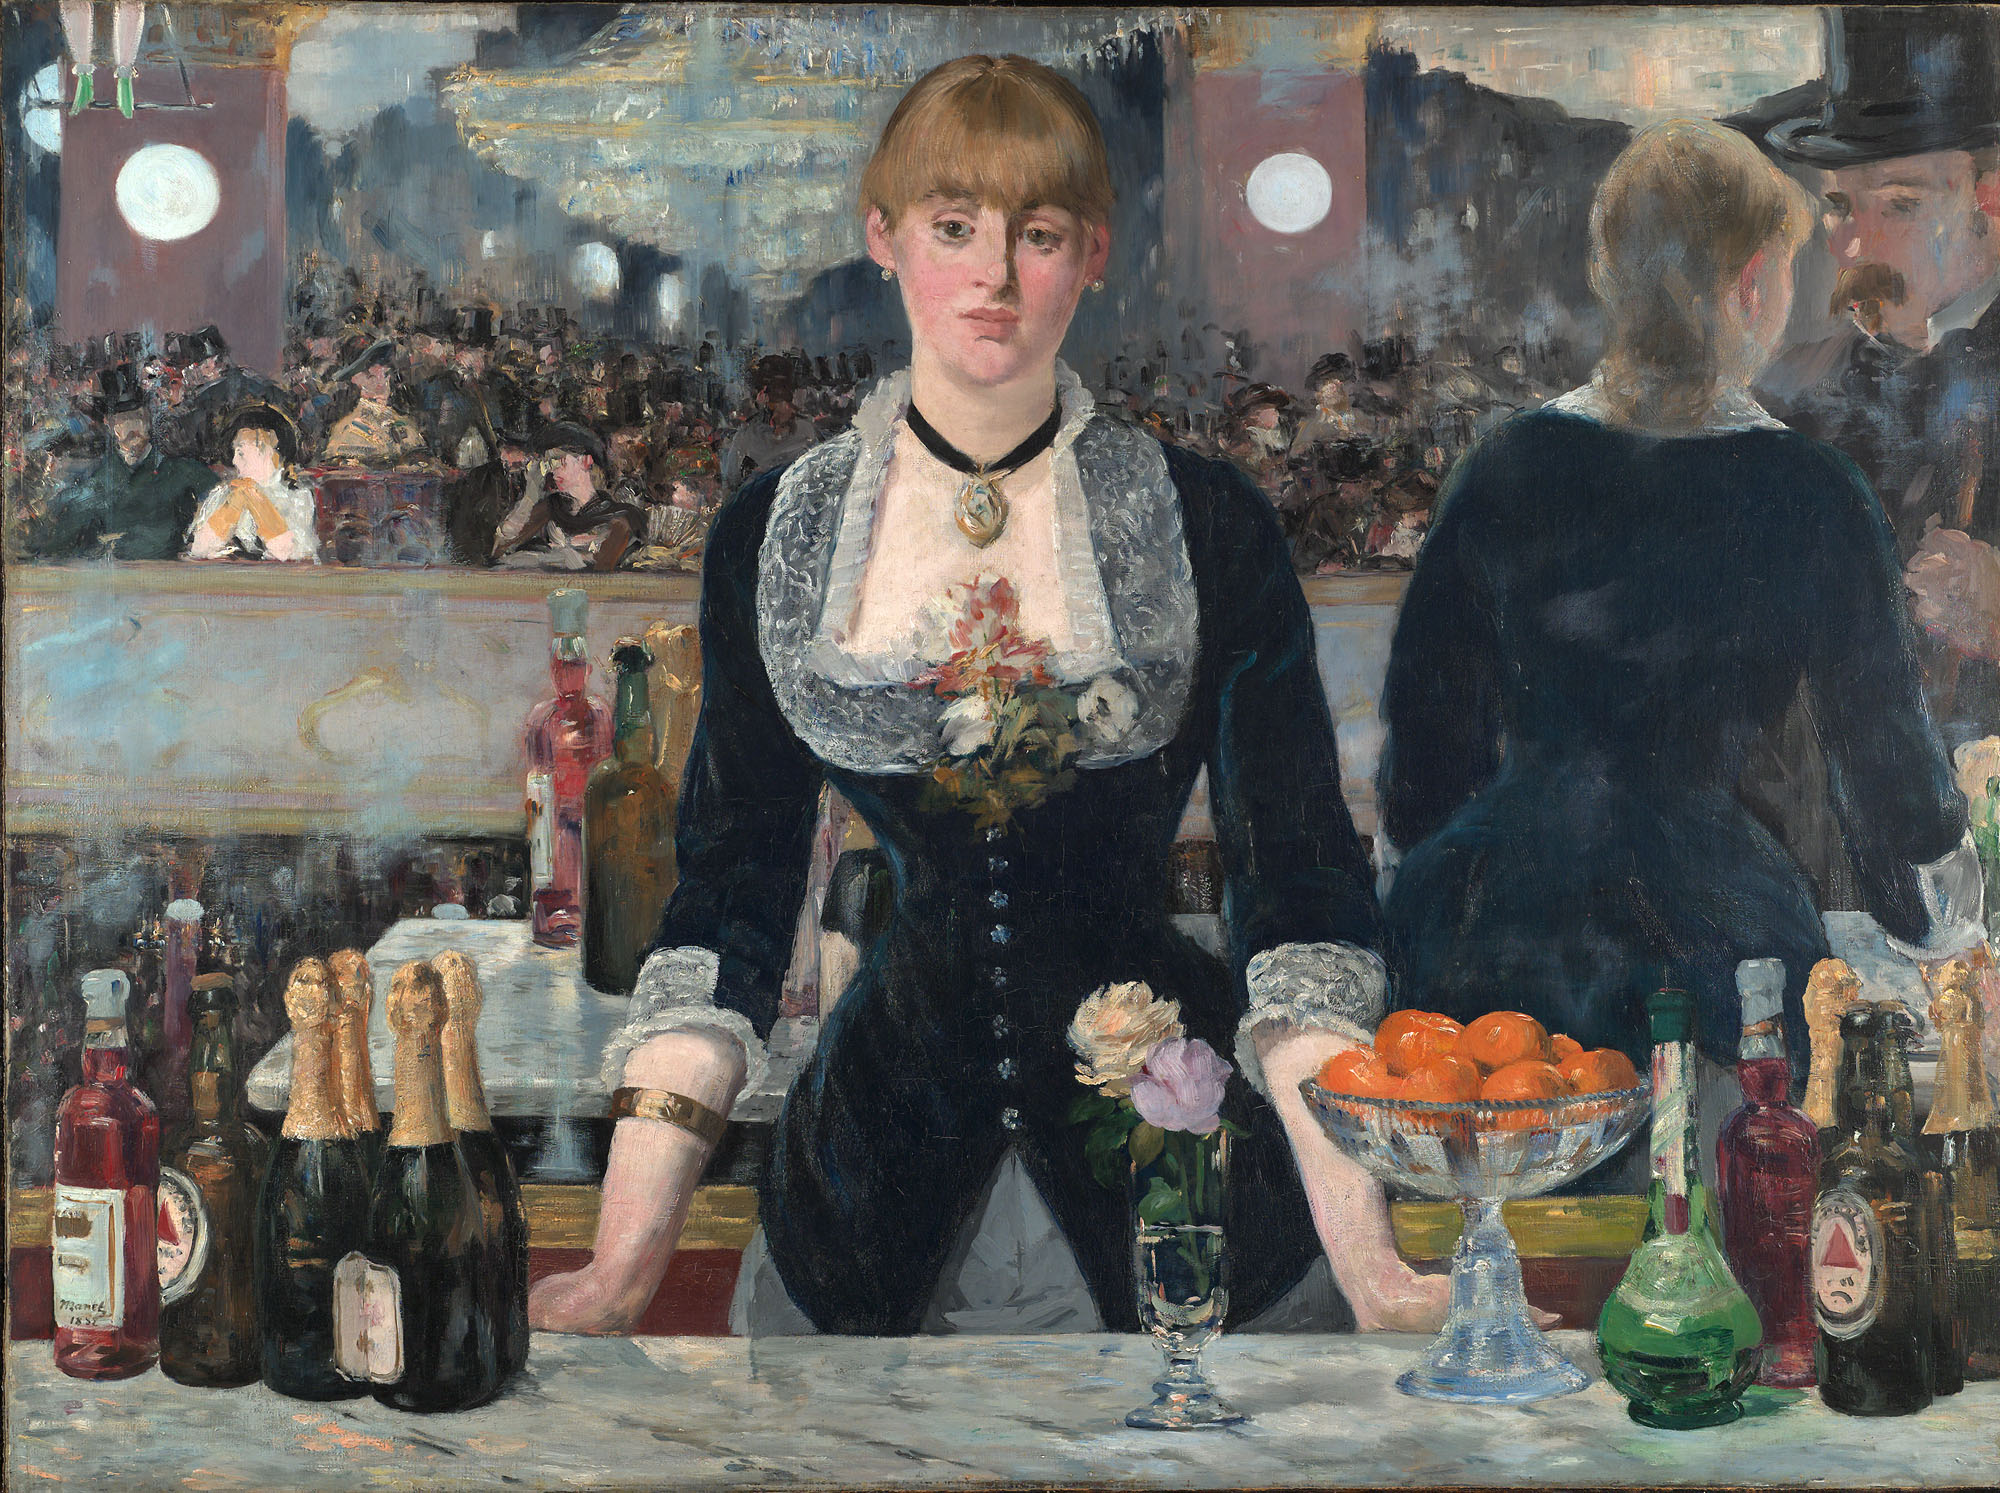 edouard_manet_a_bar_at_the_folies-berg_re.jpg